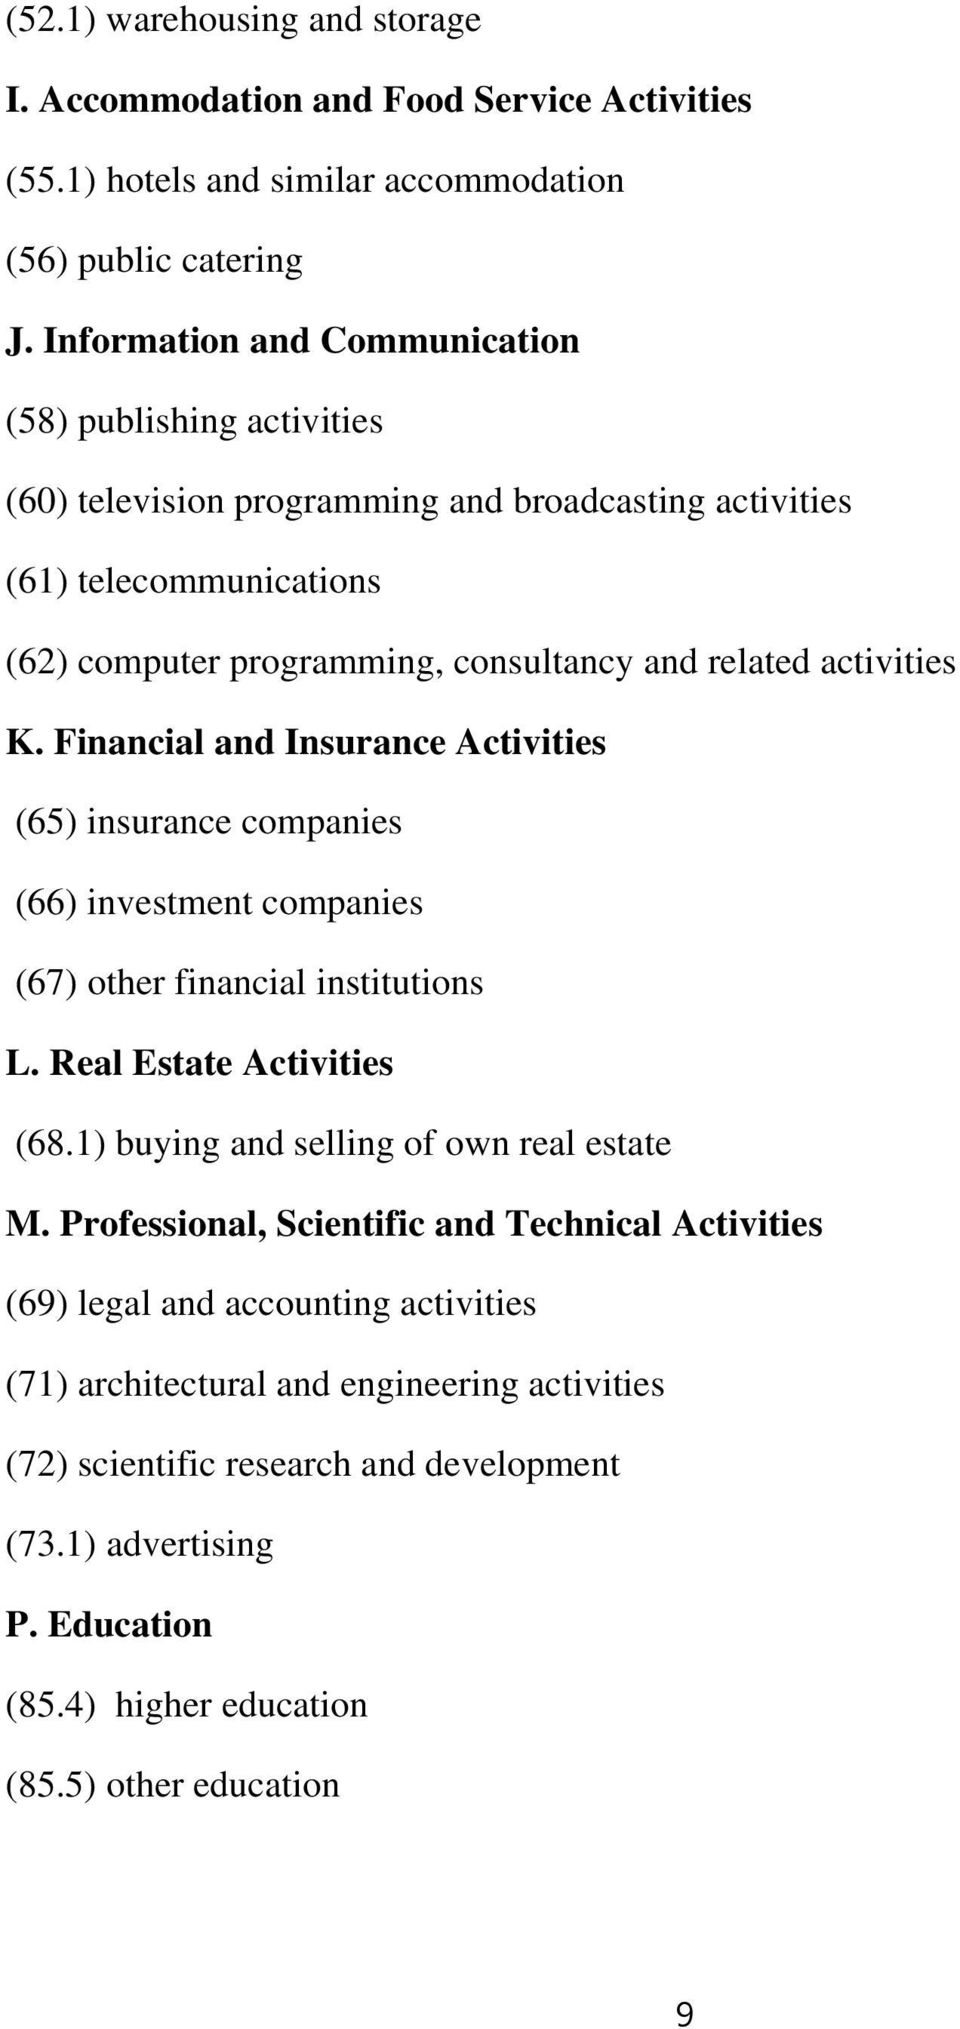 activities K. Financial and Insurance Activities (65) insurance companies (66) investment companies (67) other financial institutions L. Real Estate Activities (68.